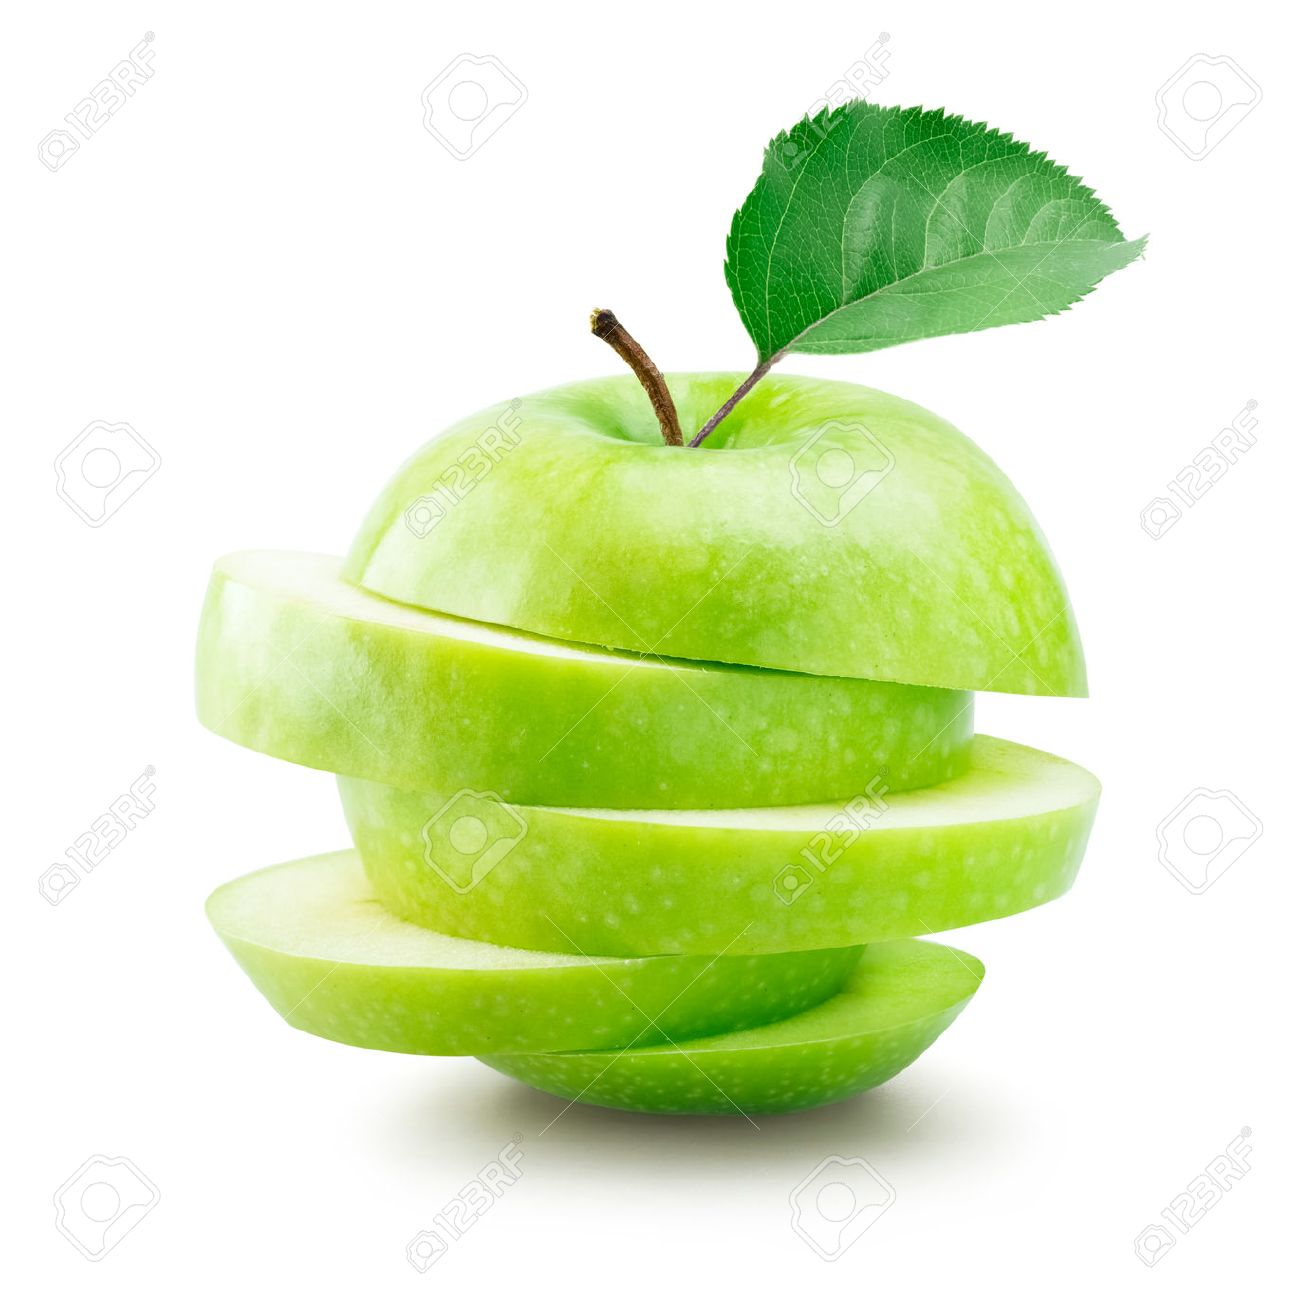 Green Apple Stock Images RoyaltyFree Images Vectors Shutterstock